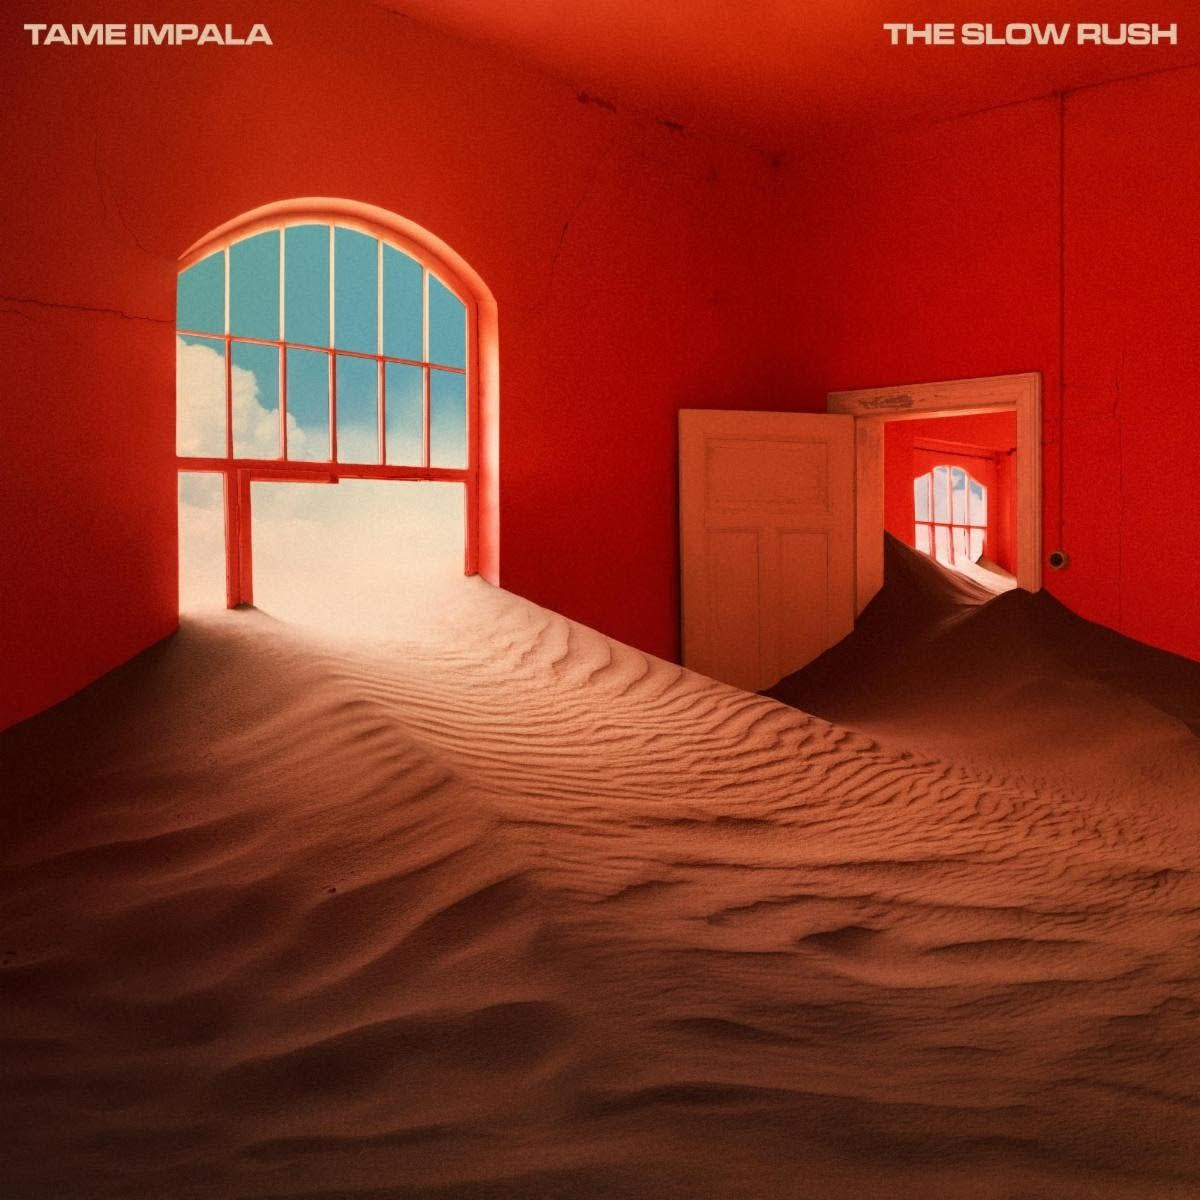 Tame Impala, 'The Slow Rush'